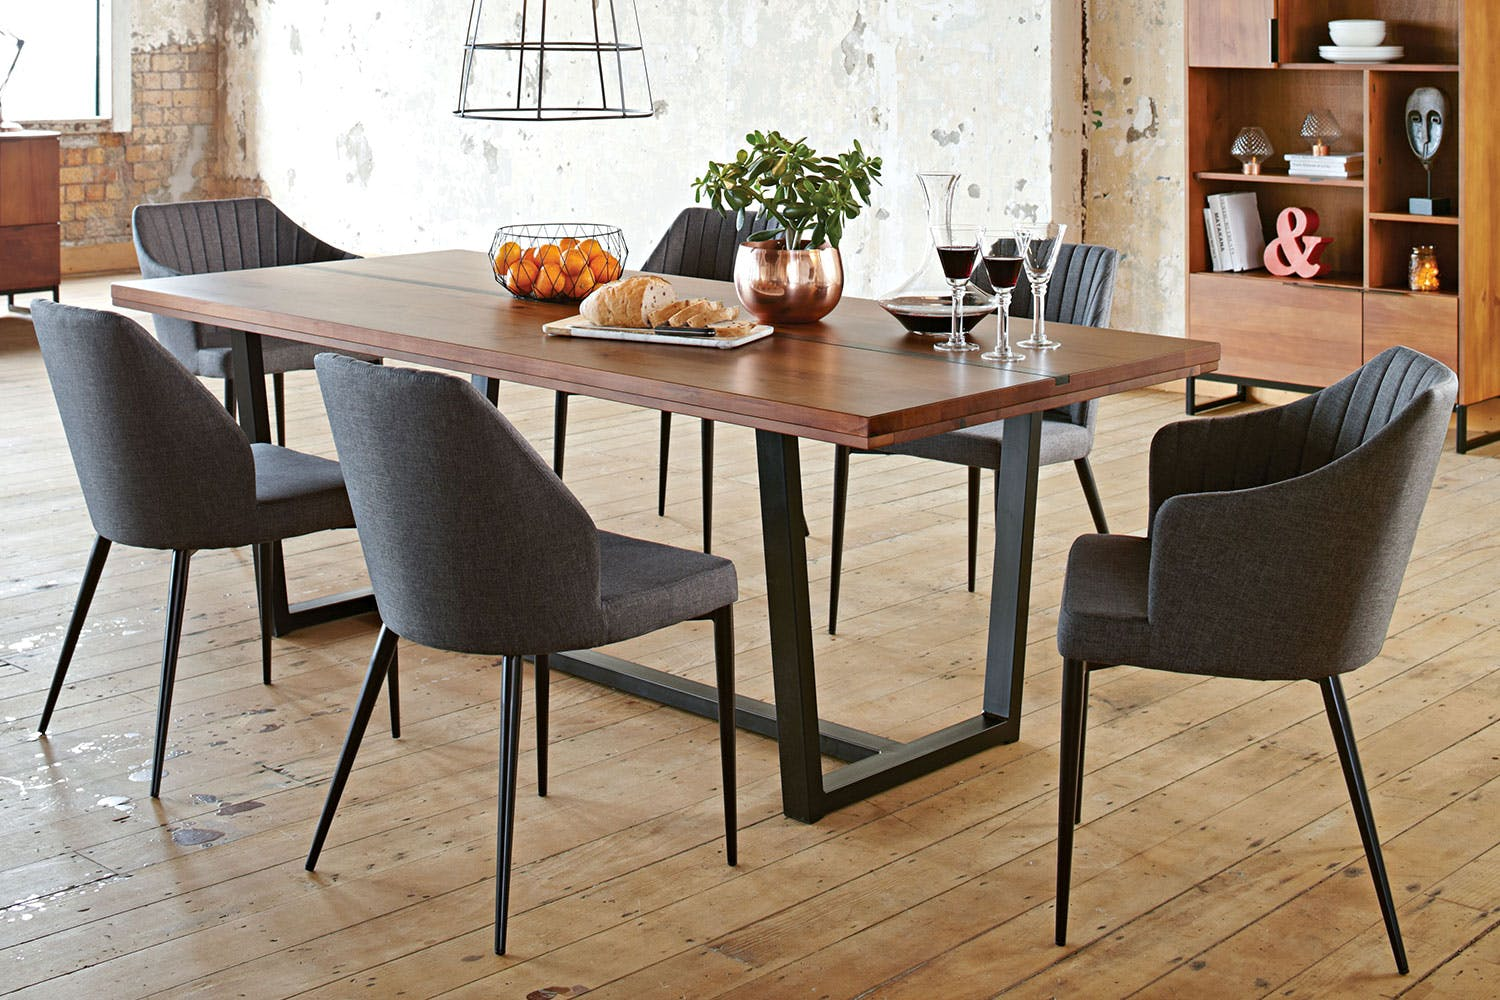 matai bay dining table by sorensen furniture harvey norman new